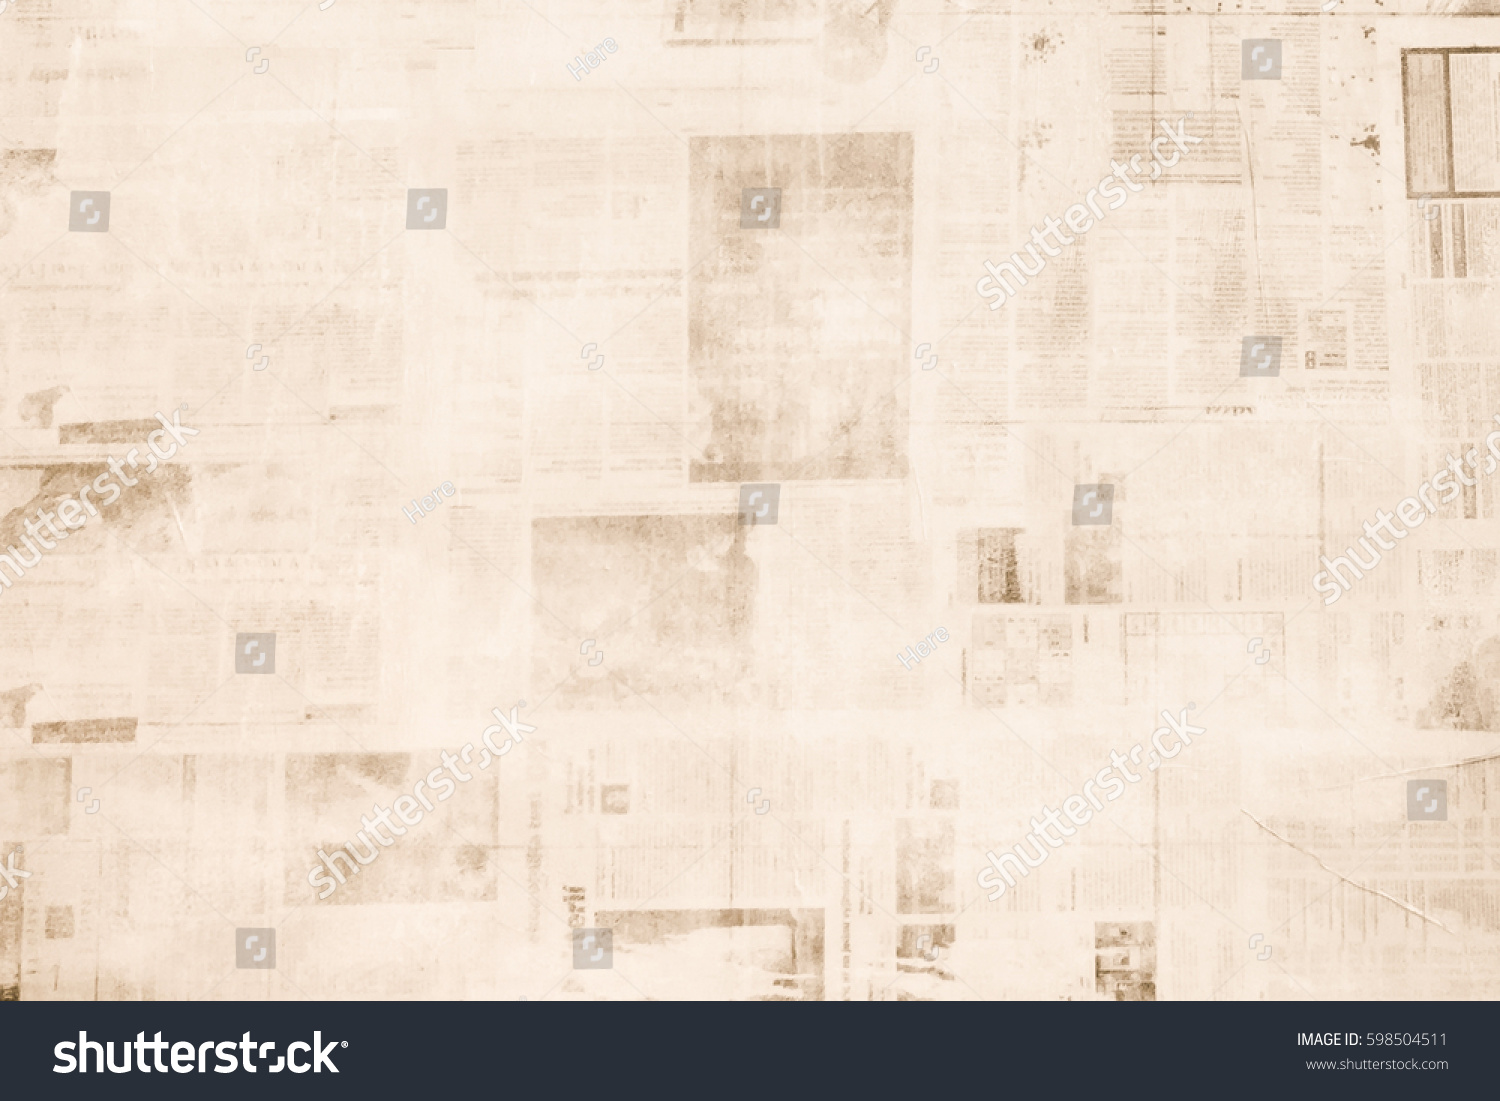 old newspaper background scratched paper design stock photo (edit